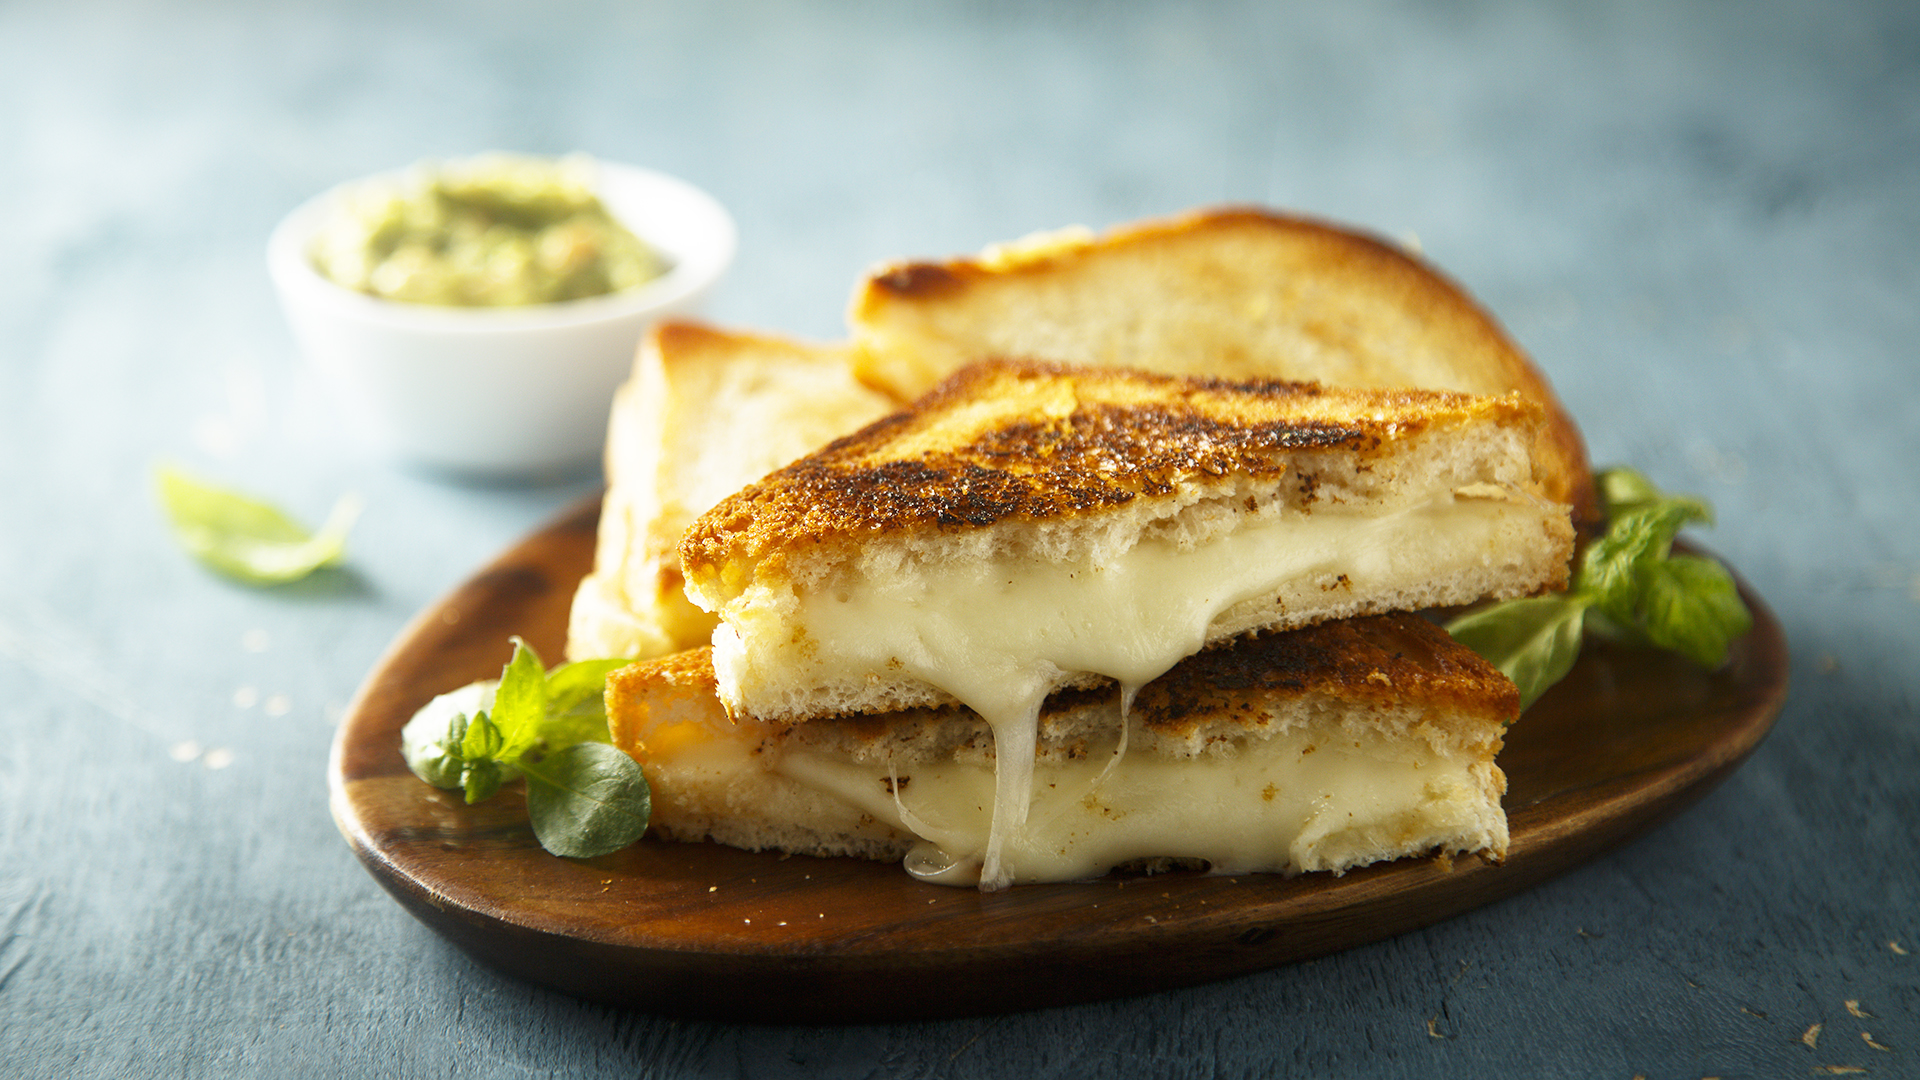 14 Grilled Cheese Sandwiches Recipes That Make Perfect Easy Dinners –  SheKnows